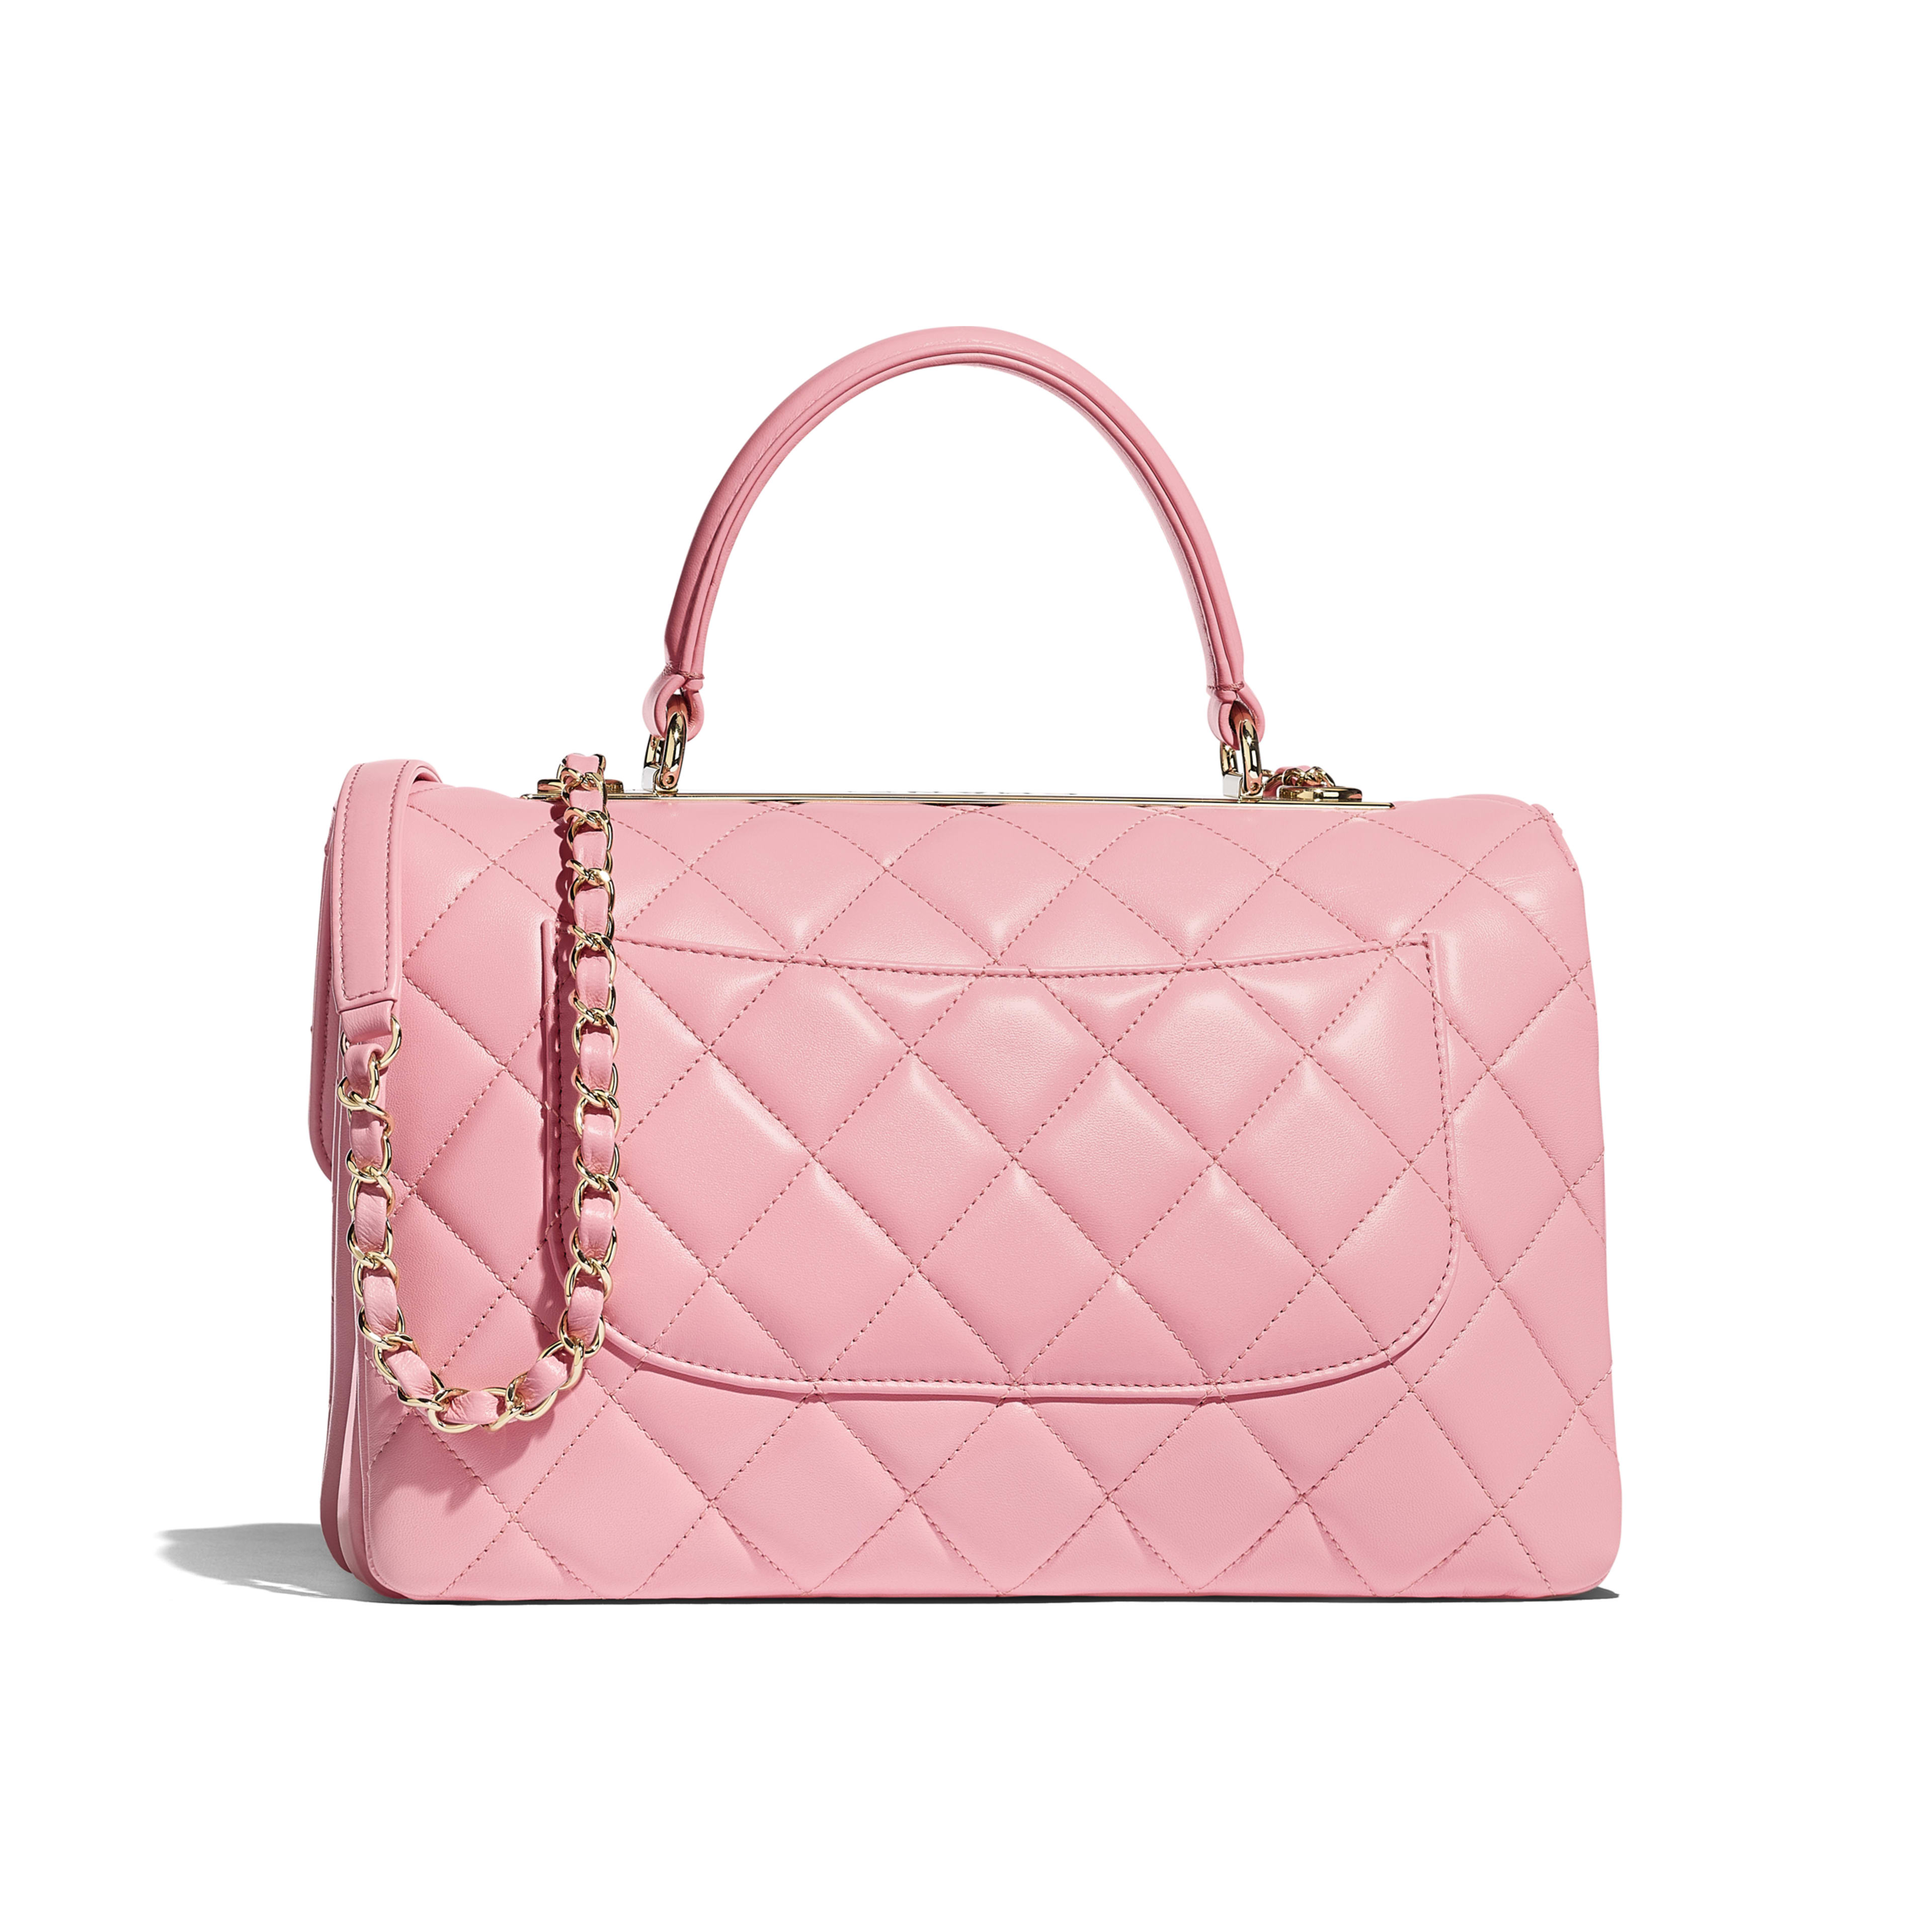 Flap Bag with Top Handle - Pink - Lambskin & Gold-Tone Metal - Alternative view - see full sized version